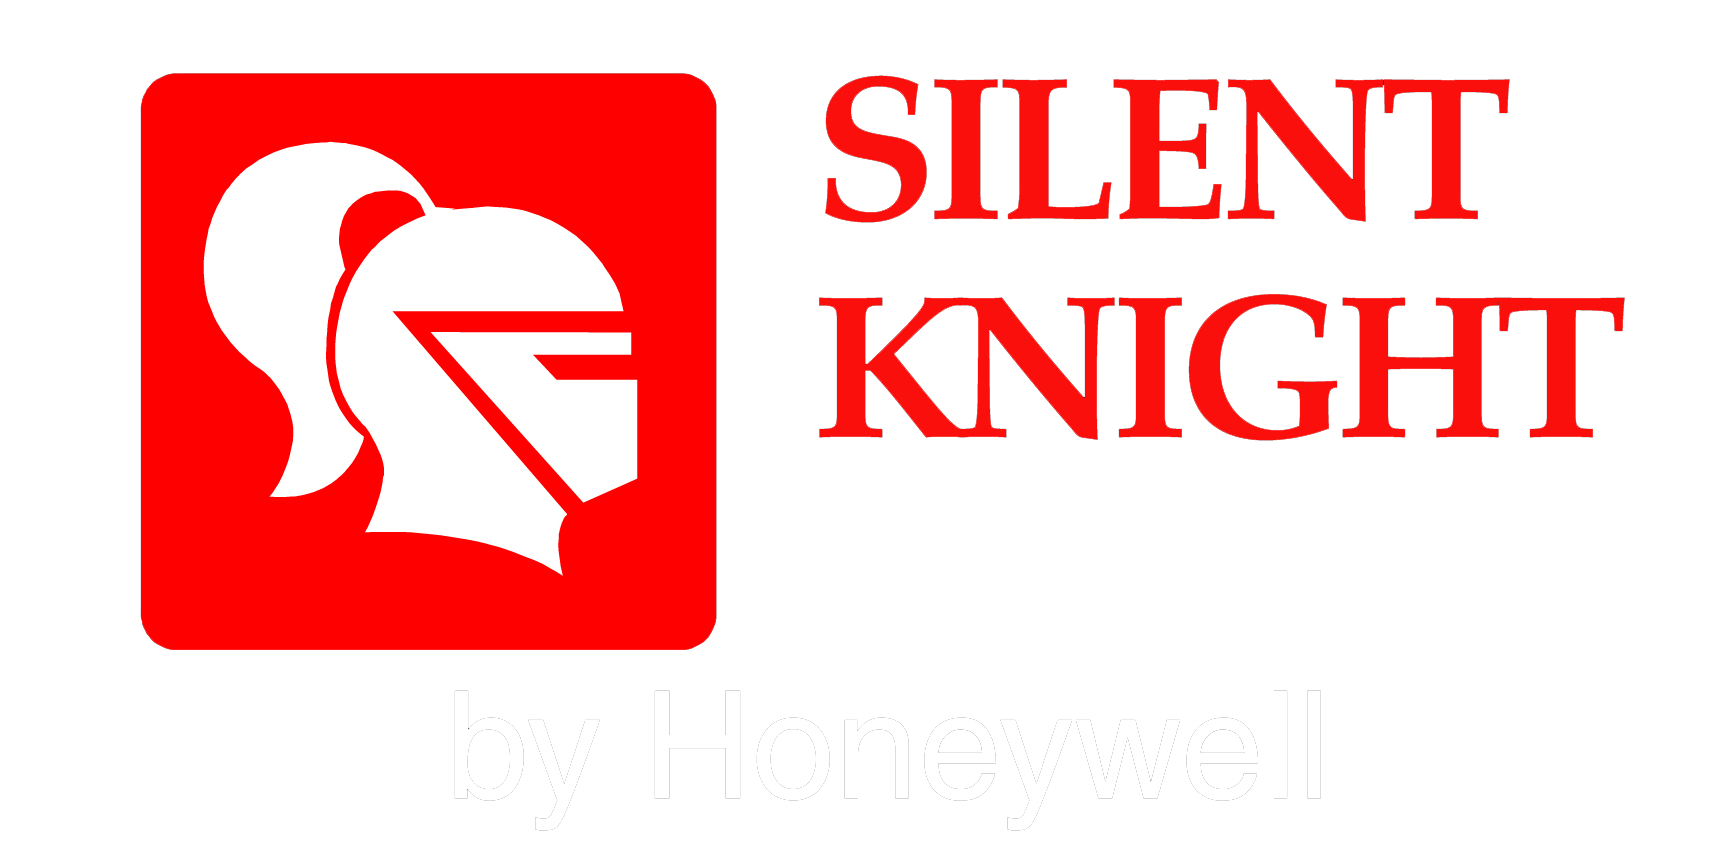 Silent Knight by Honeywell Farenhyt Authorized Distributor